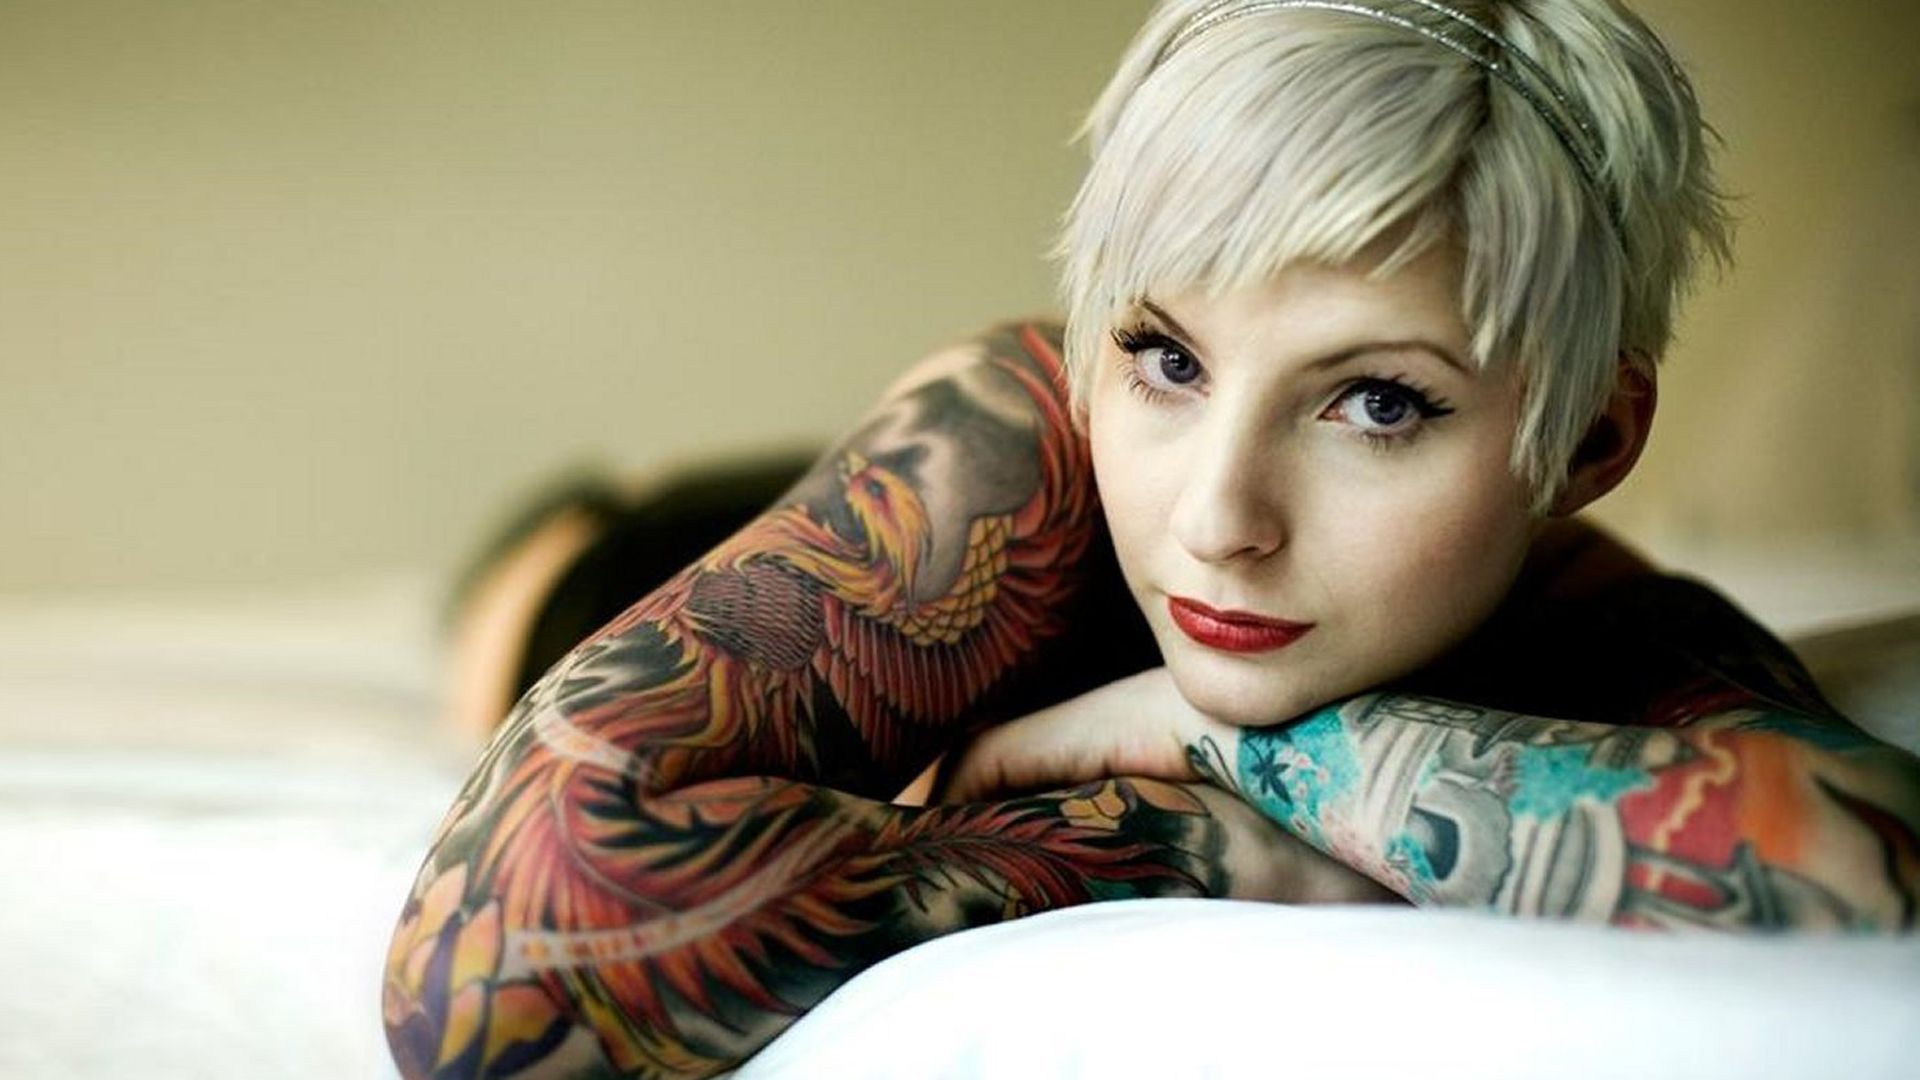 Tattooed Girl 19201080 wallpaper 78 1920x1080